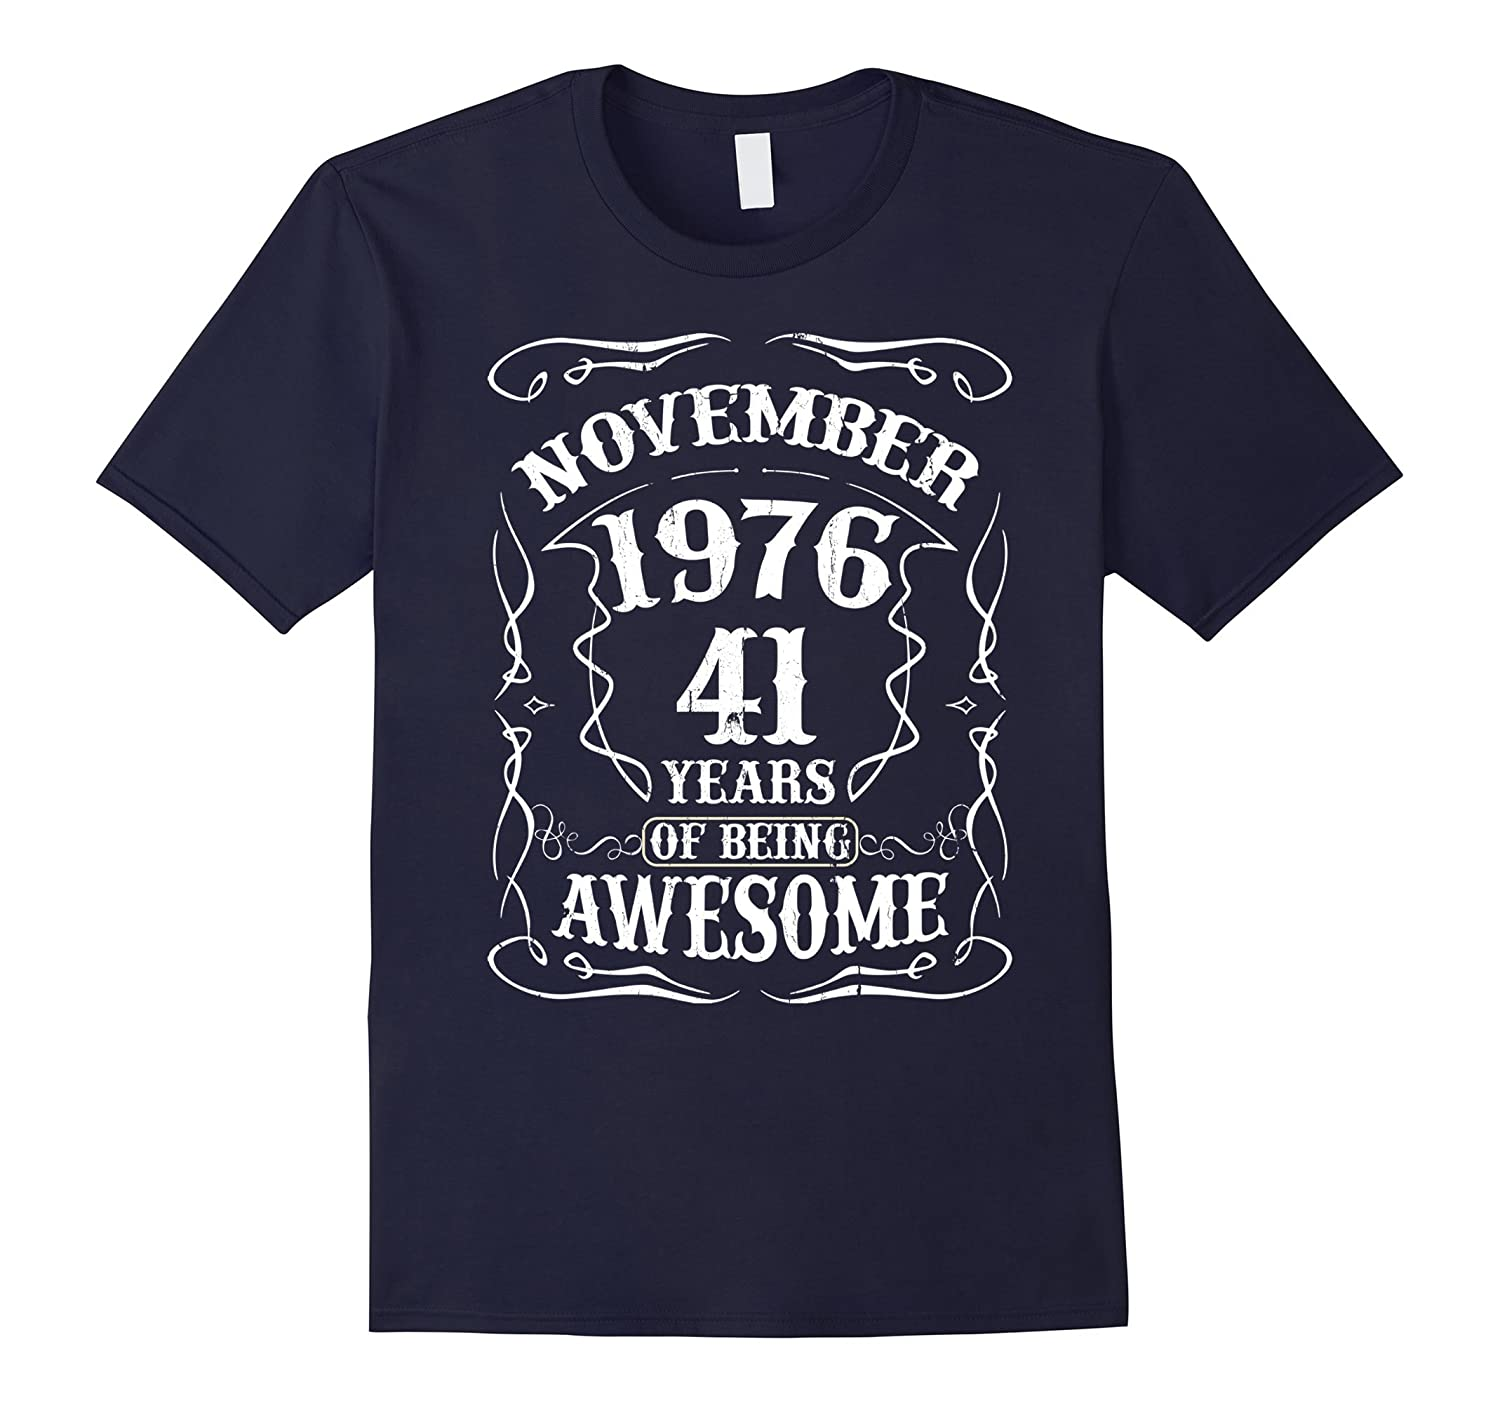 Born in November 1976 - 41 years of being awesome T-Shirt-FL